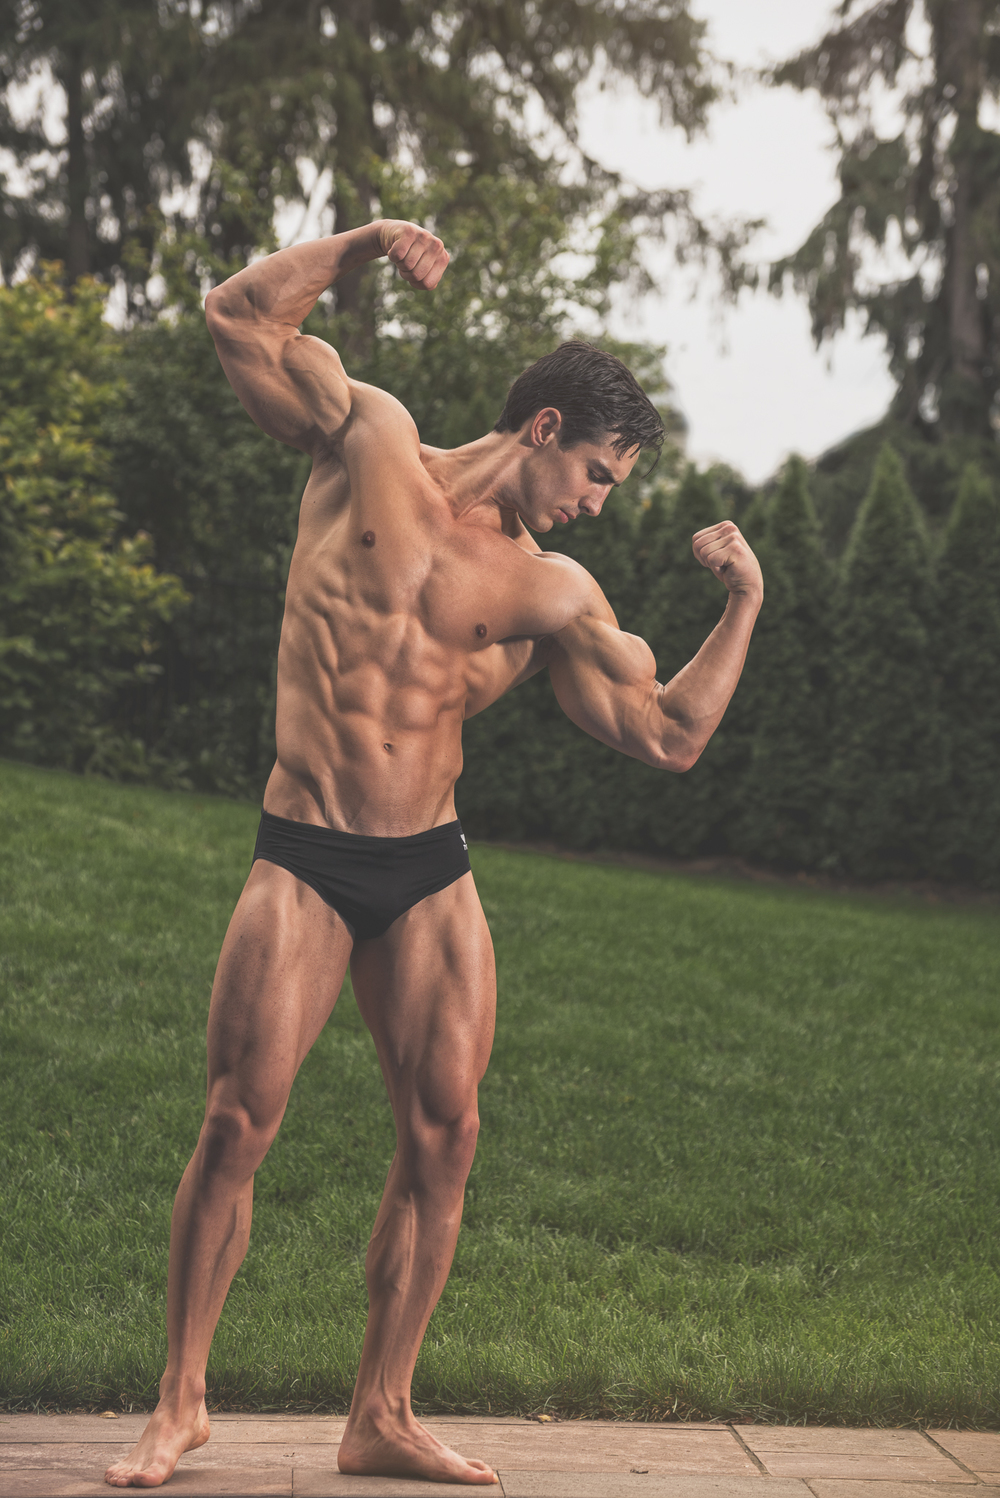 Hamilton Toronto Fitness Photographer - Rob Monroe Posing - photo by Marek Michalek.jpg